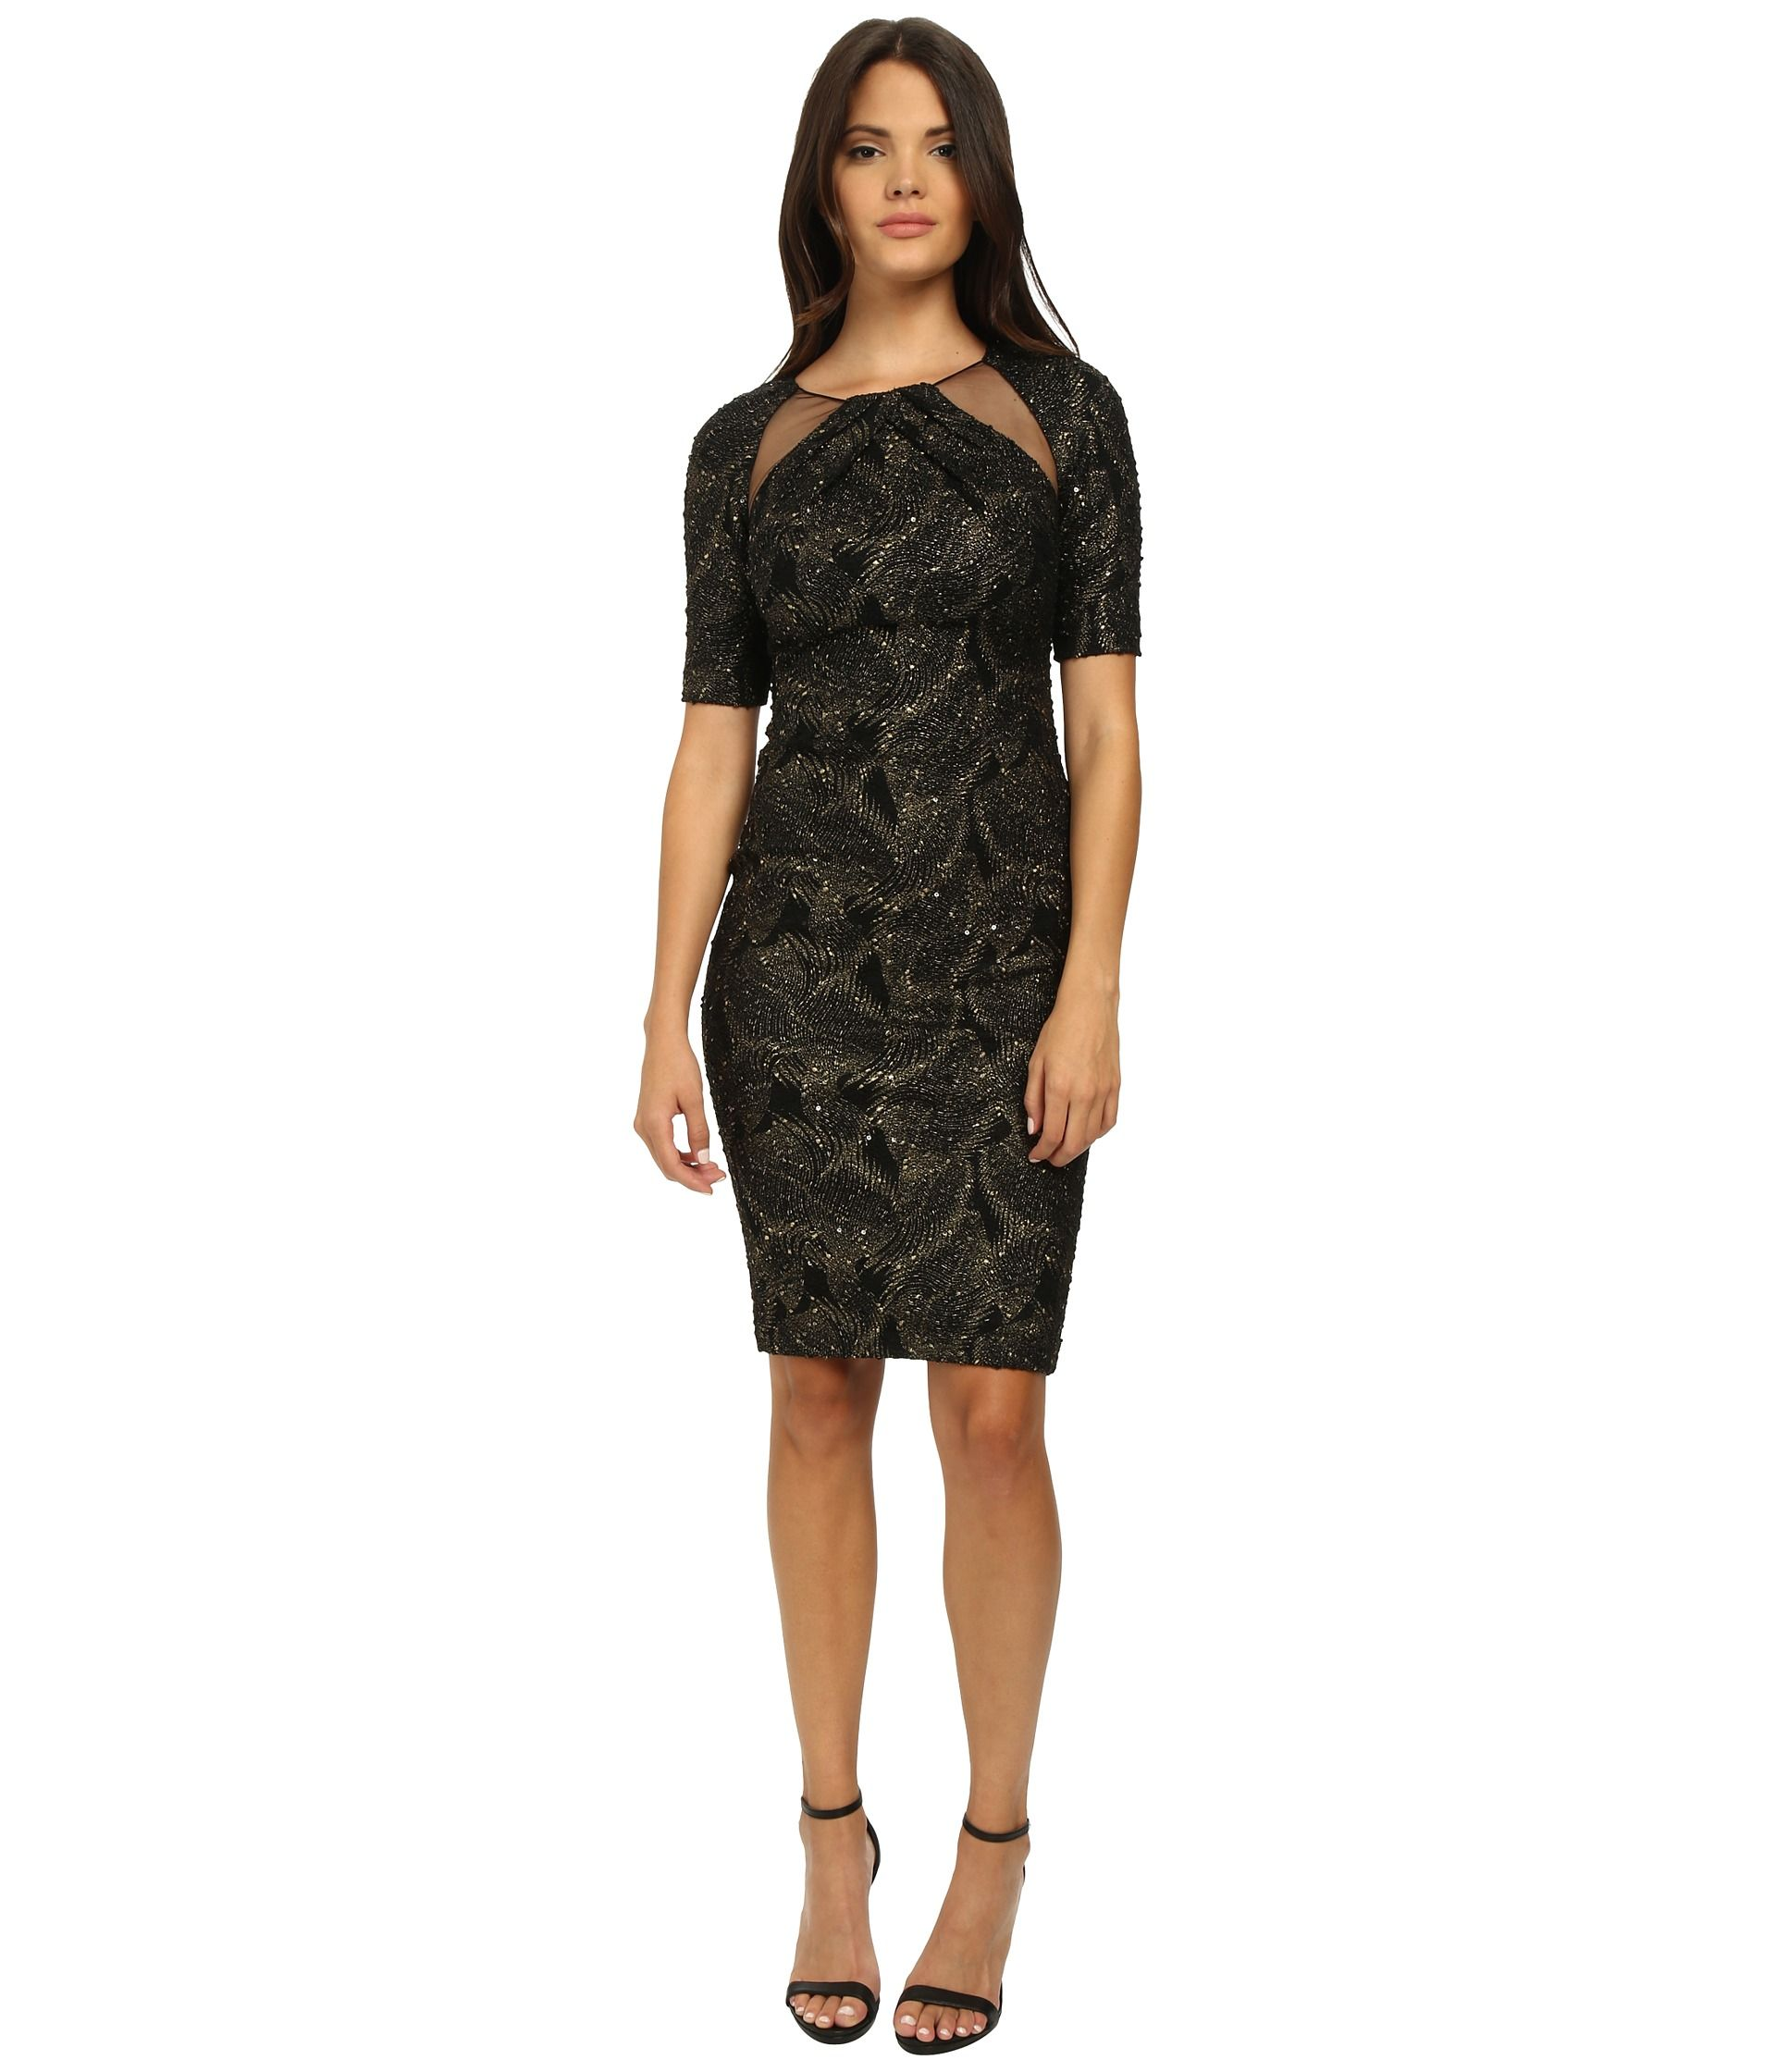 Pm cocktail dresses hum color dress pinterest black gold